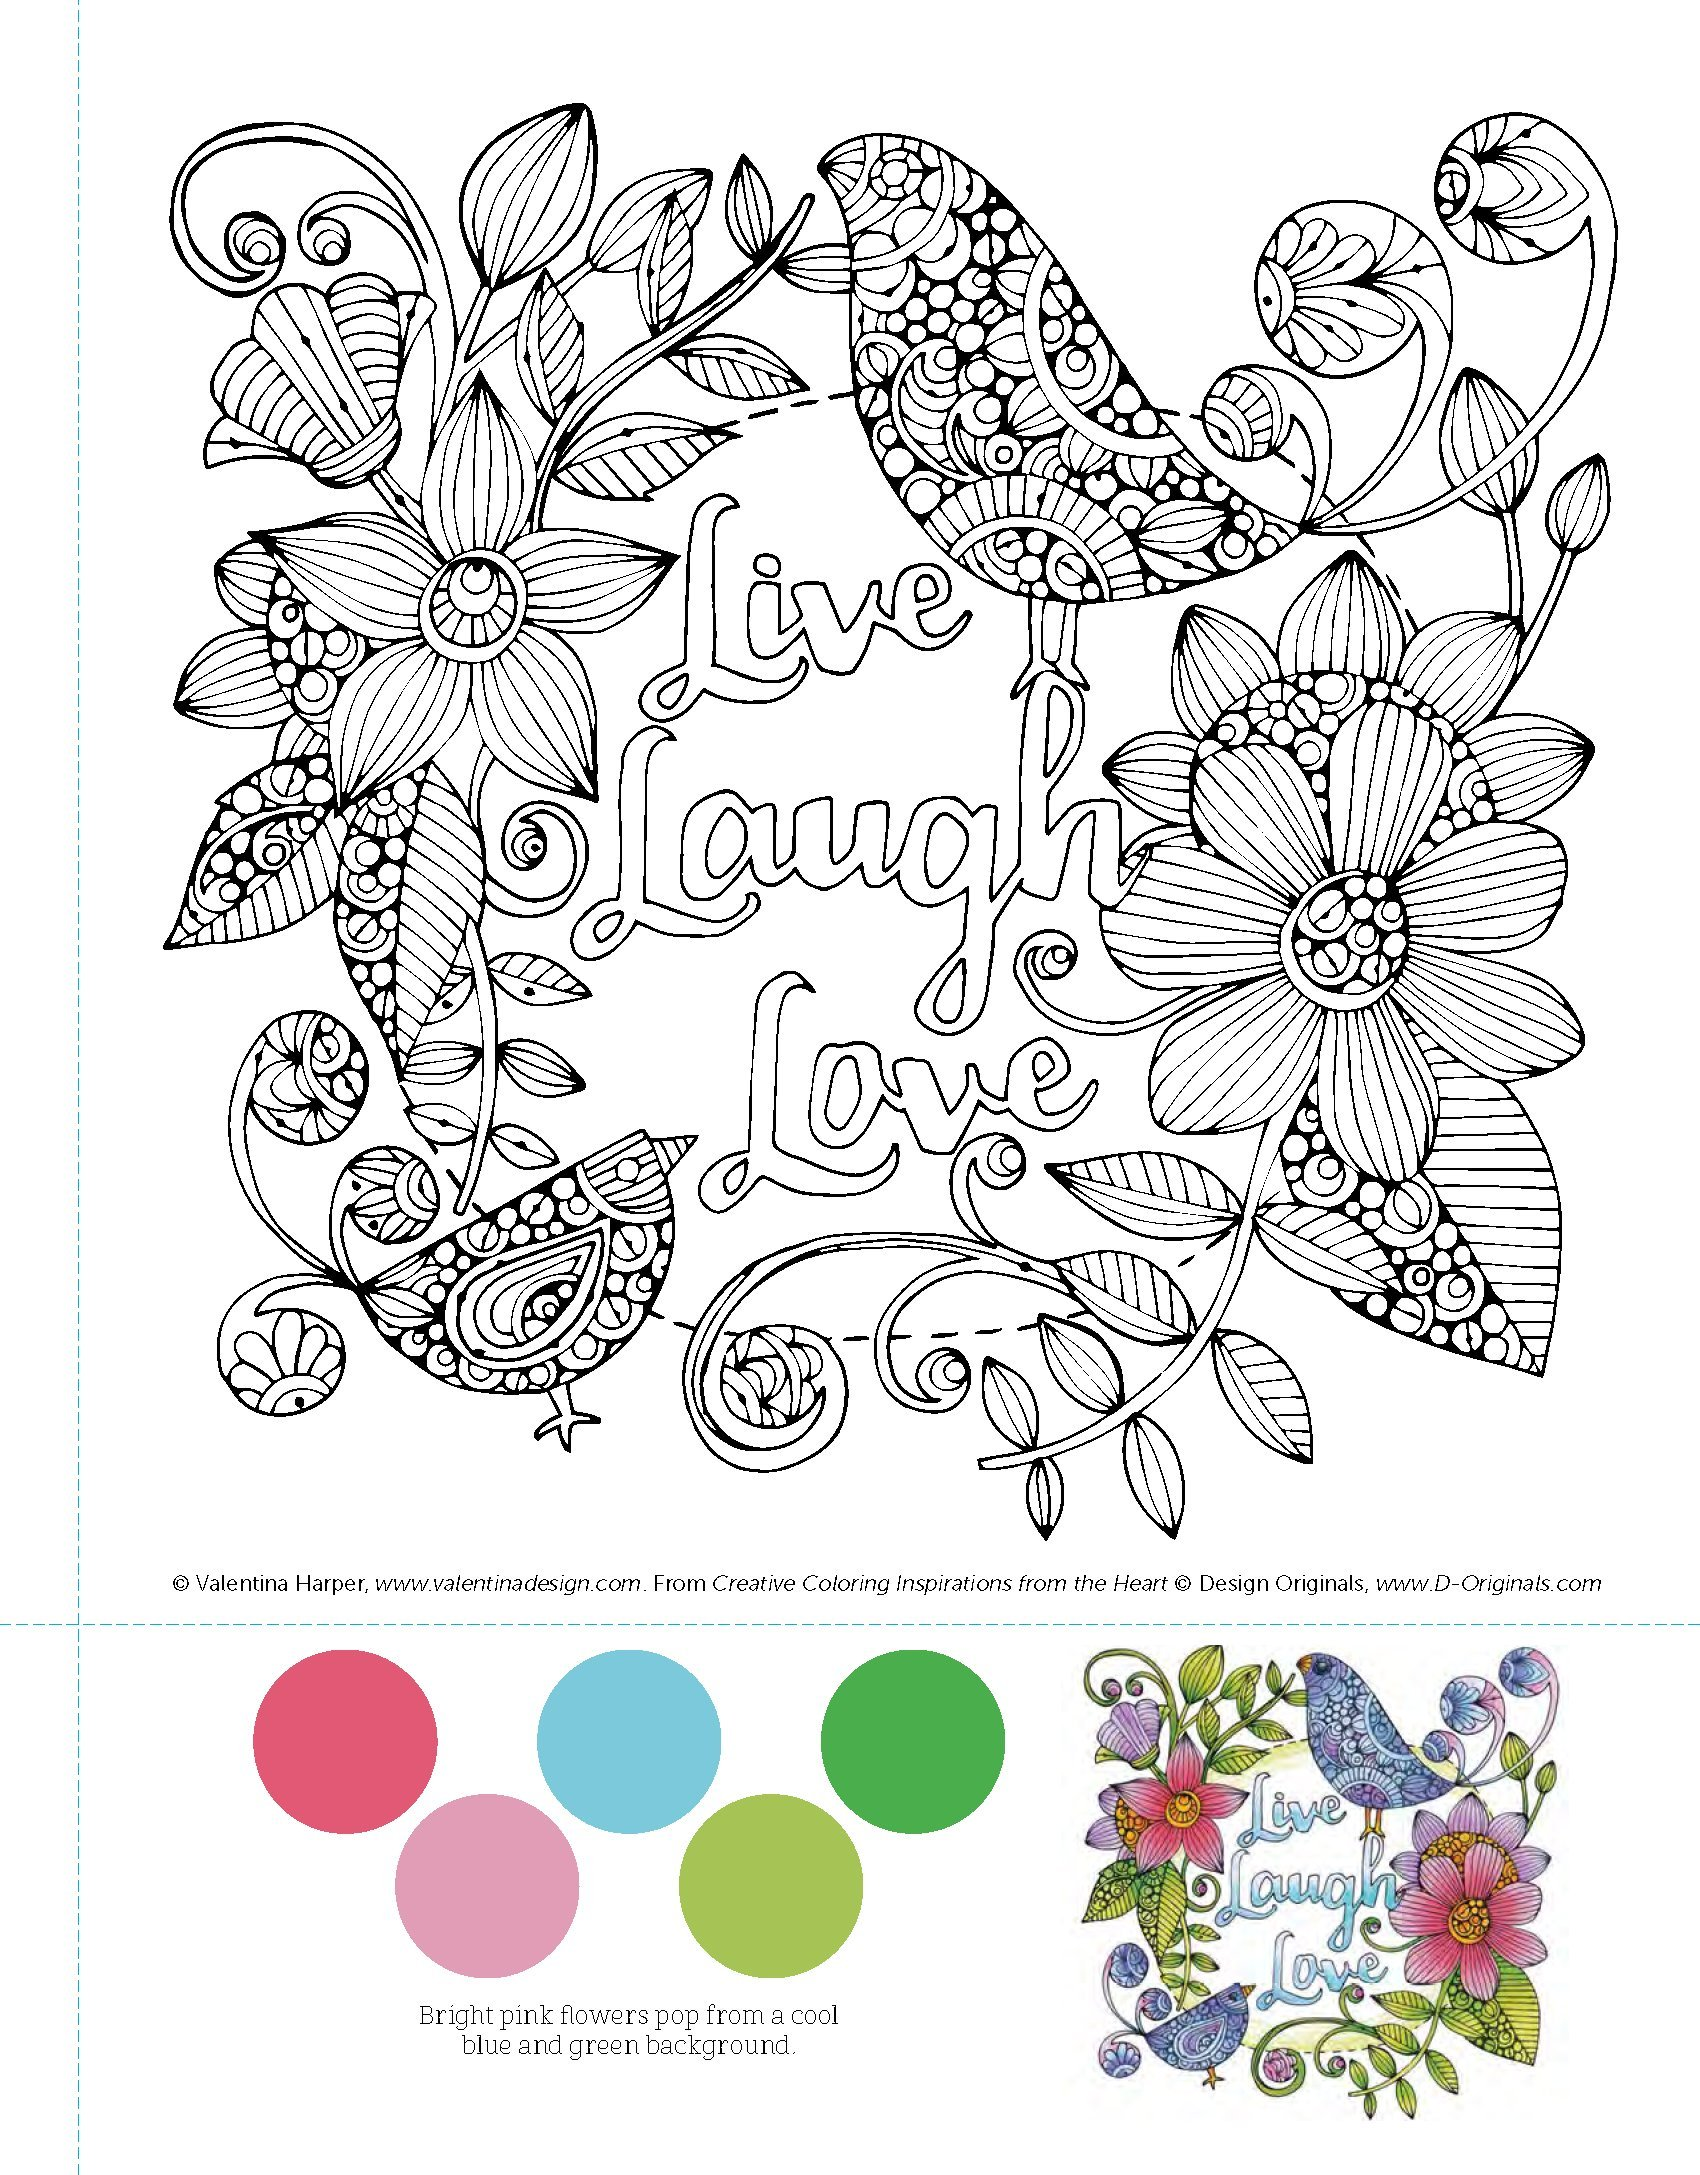 Amazon.com: Creative Coloring Inspirations from the Heart: Art ...